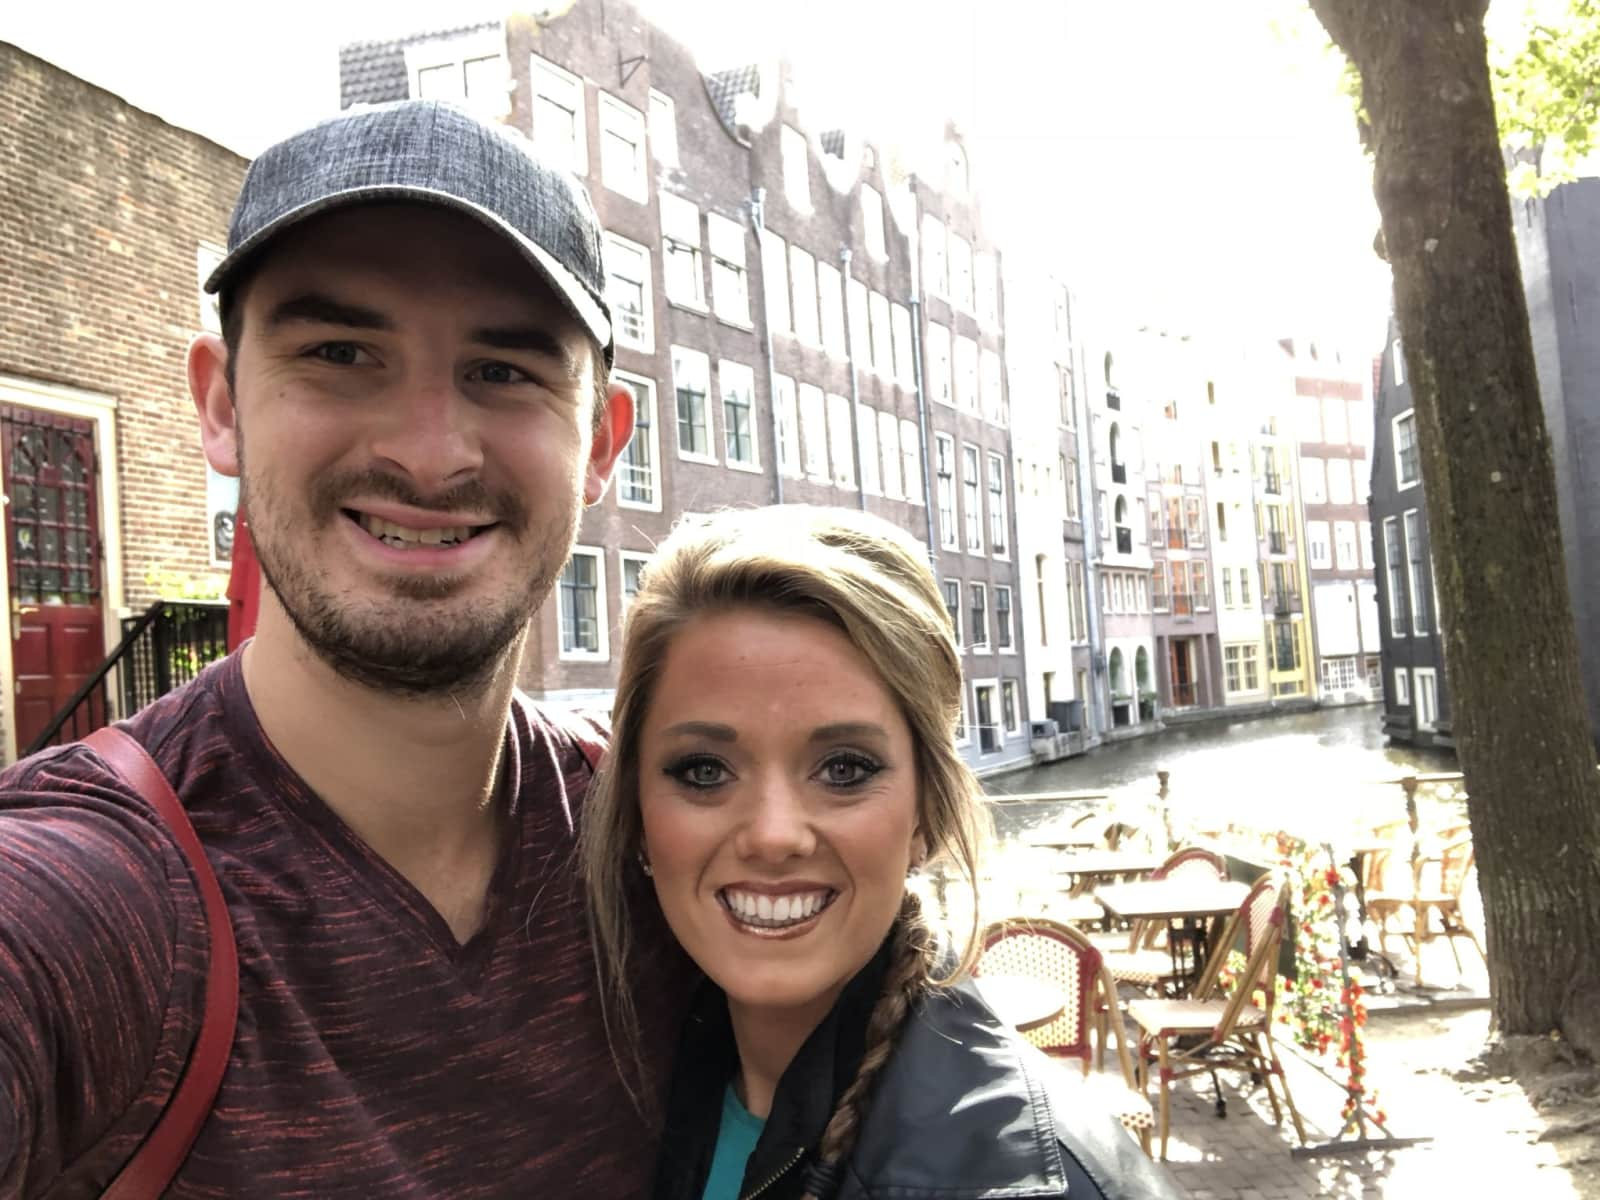 Stephen & Taylor from Chicago, Illinois, United States